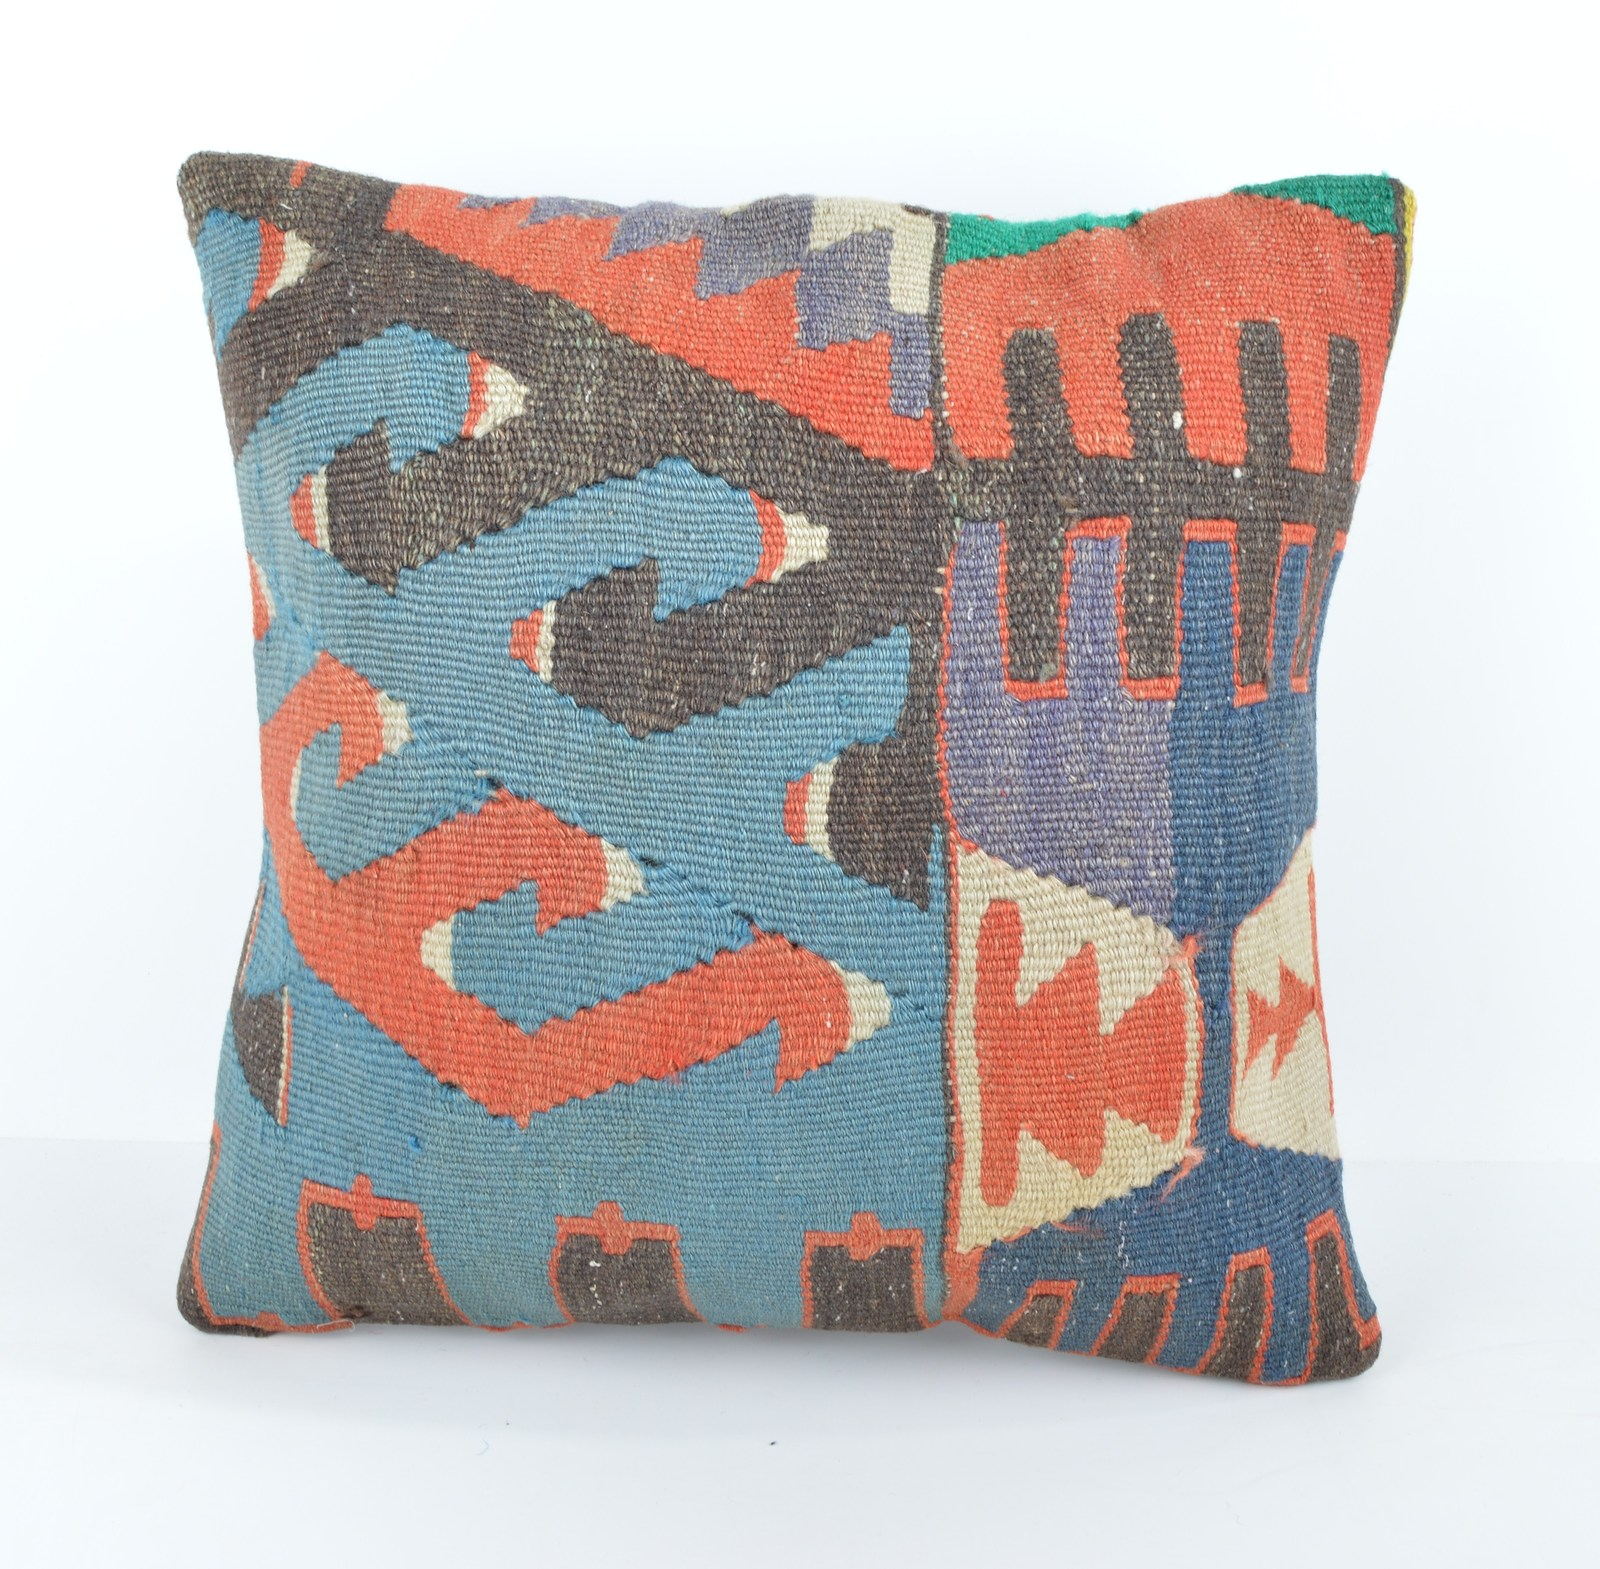 Throw Pillows King Size Bed : throw pillow - throw Kilim Pillow- throw rug,throw furniture, throw cushions - Pillows